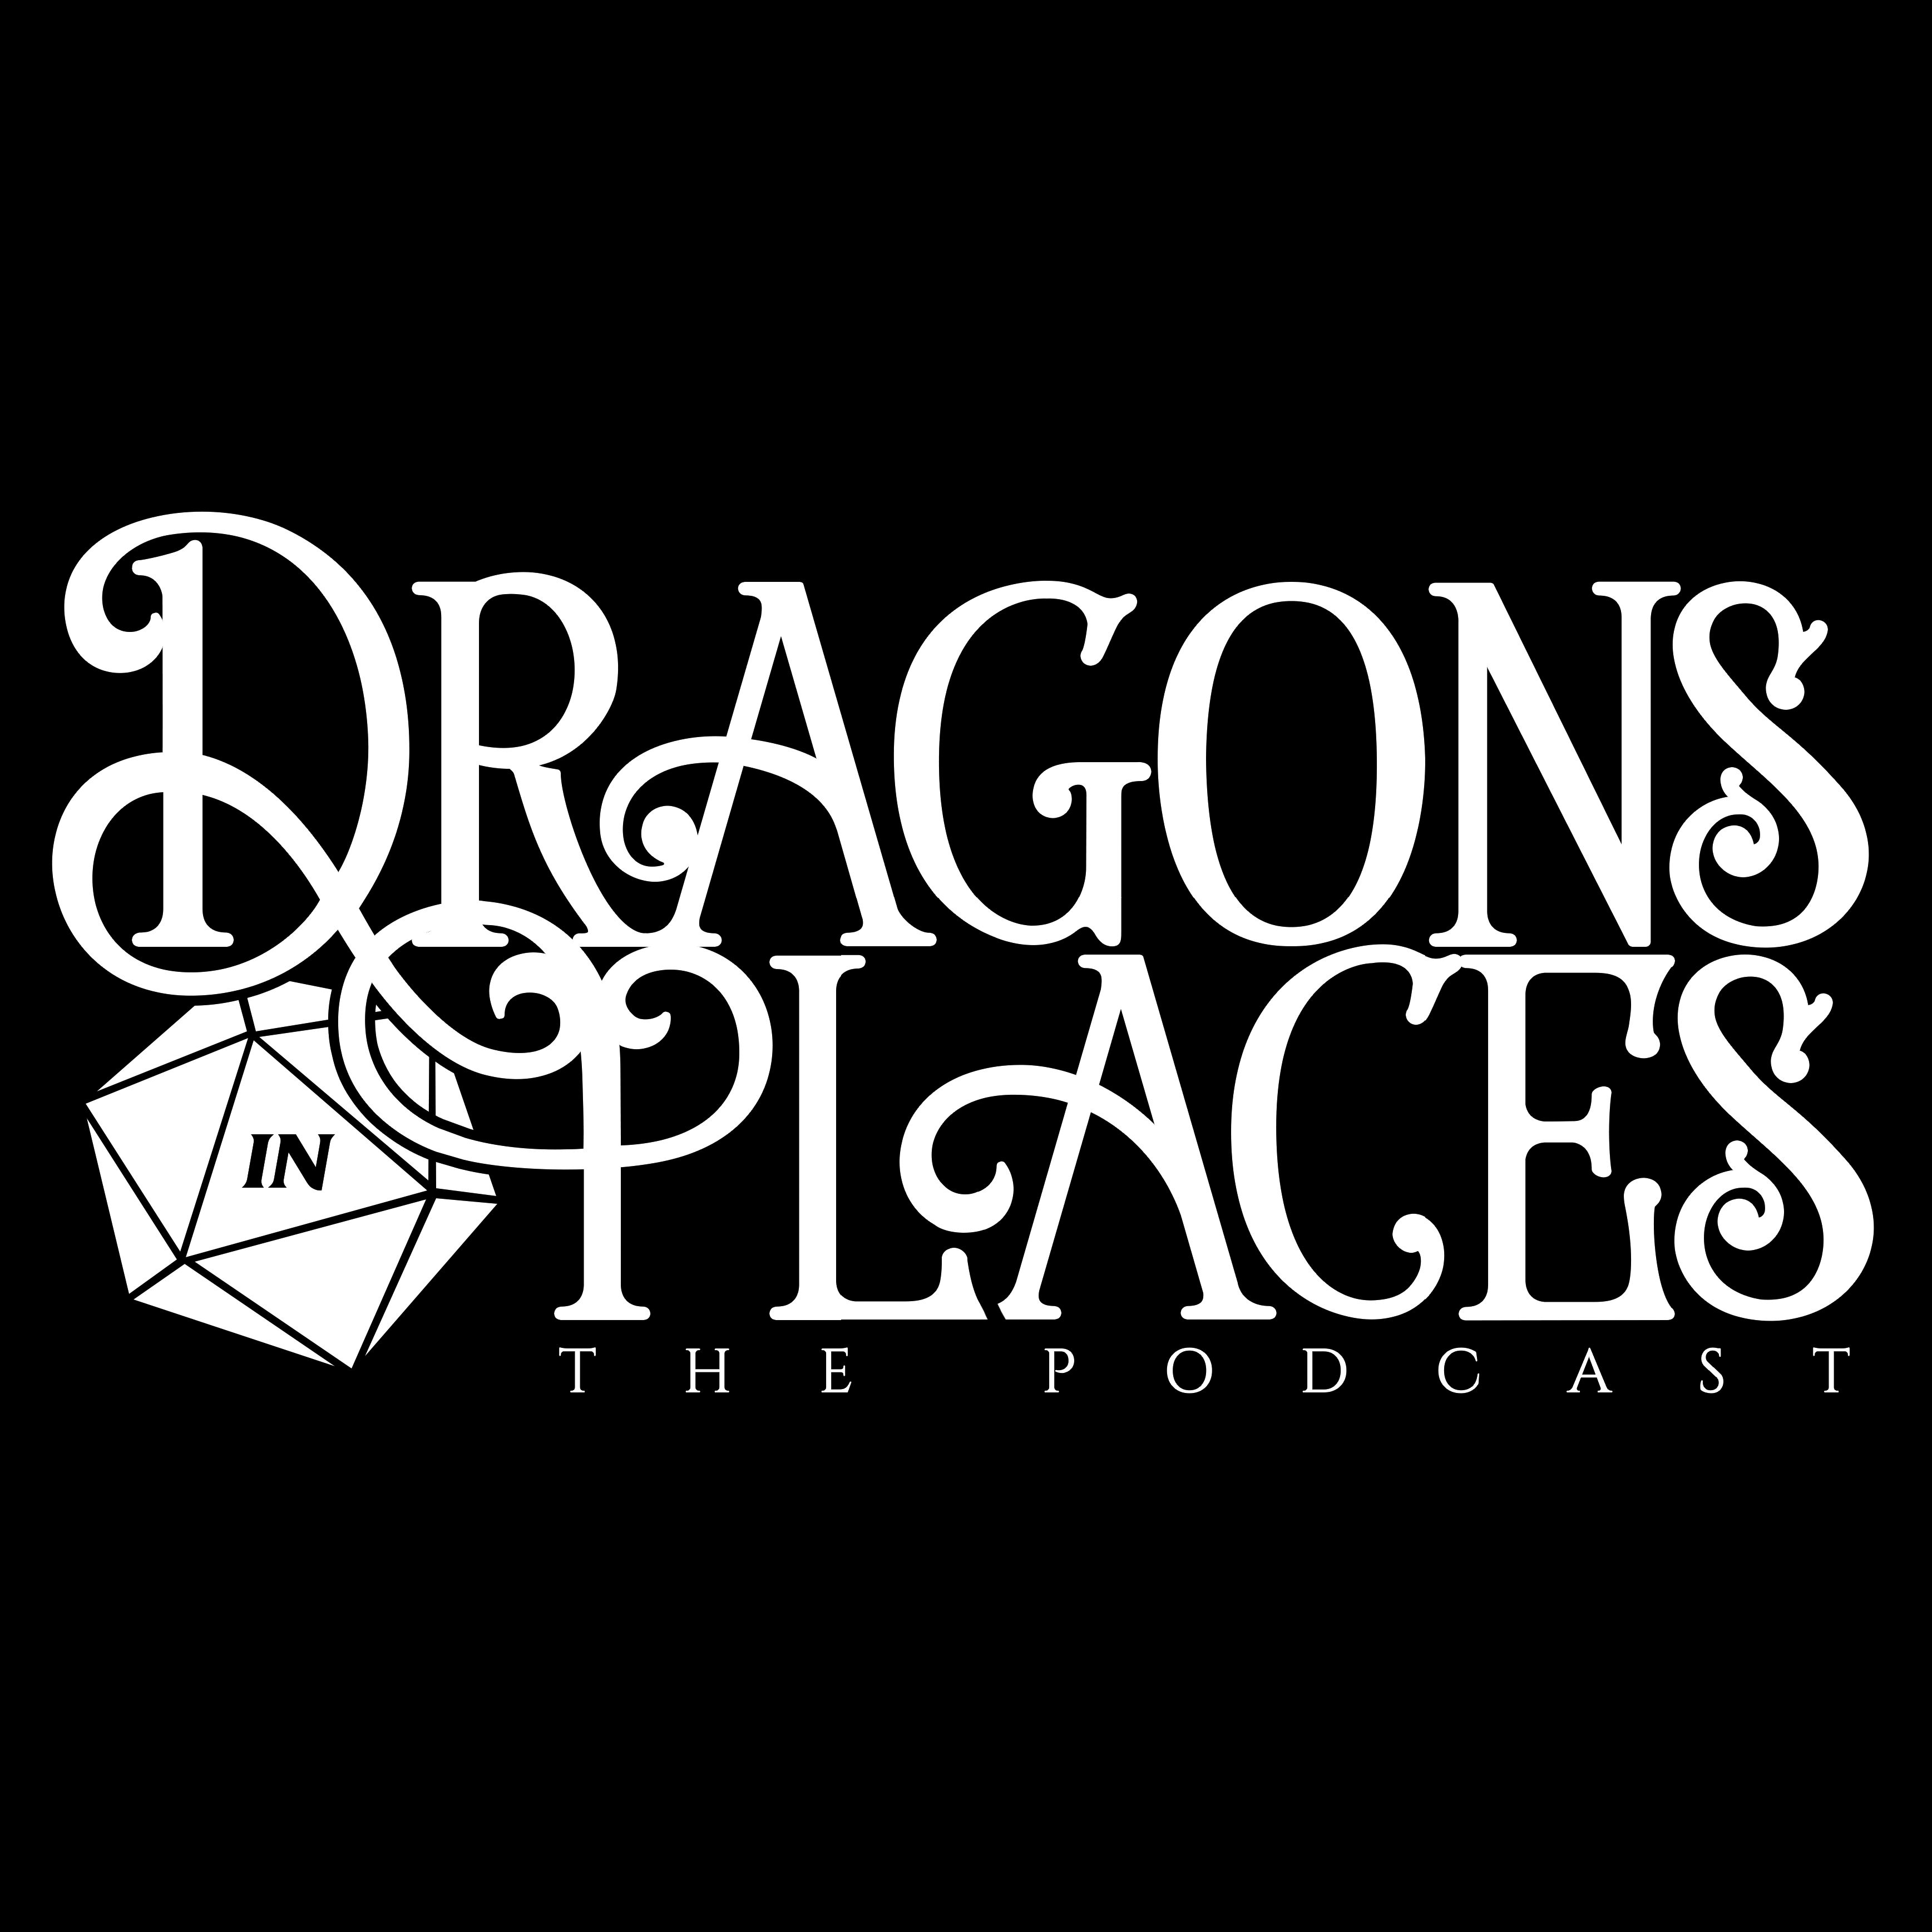 Best Episodes of Dragons In Places